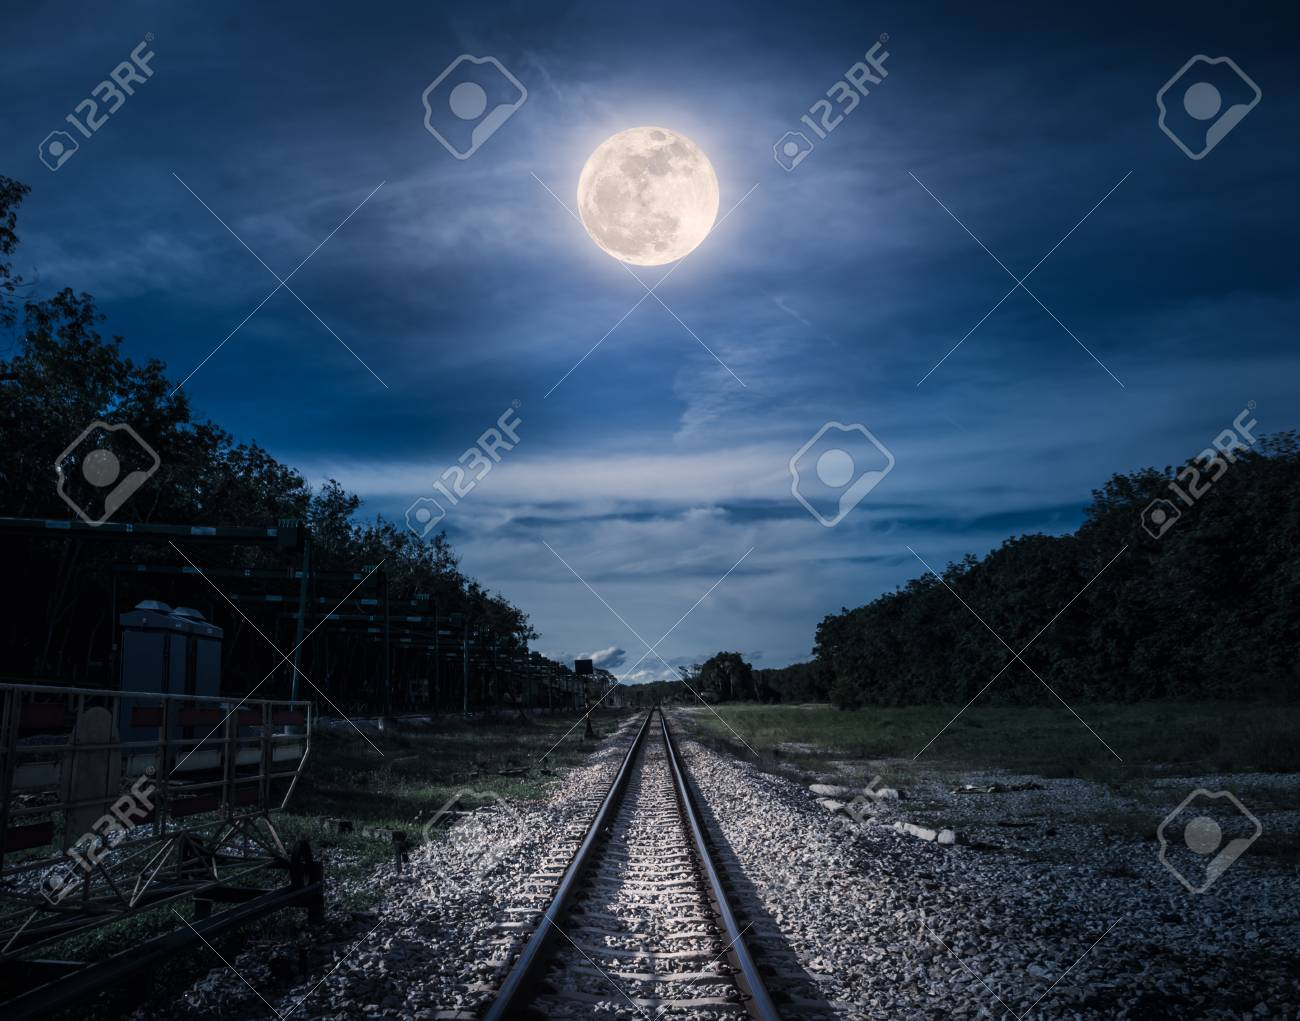 Railroad tracks through the woods at night. Beautiful blue sky and full moon above silhouettes of trees and railway. Serenity nature background. Outdoor at nighttime. The moon taken with my own camera - 89557452